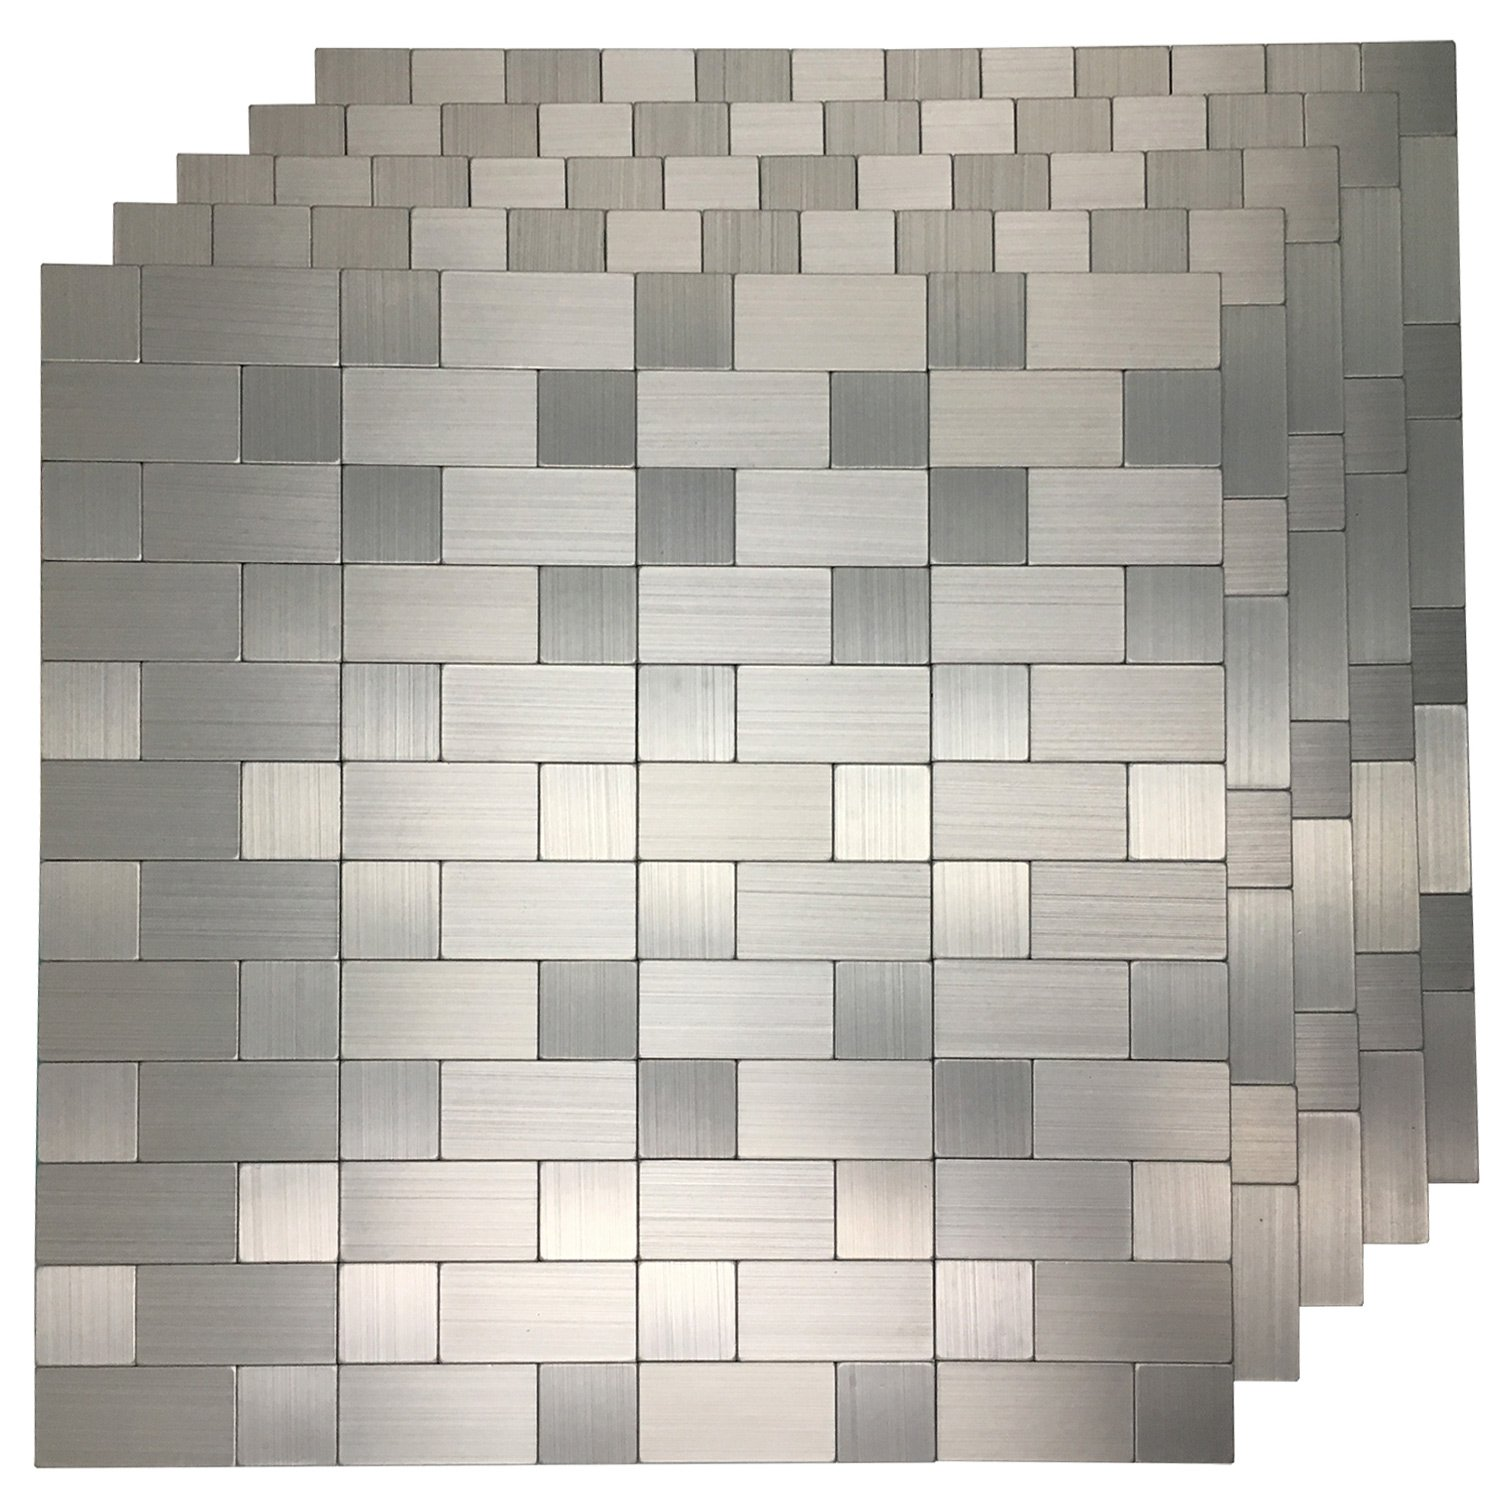 Art3d 10-Pack Self-Adhesive Metal Backsplash Peel and Stick Tile for Kitchen, 12'' x 12'' Silver Aluminium Surface by Art3d